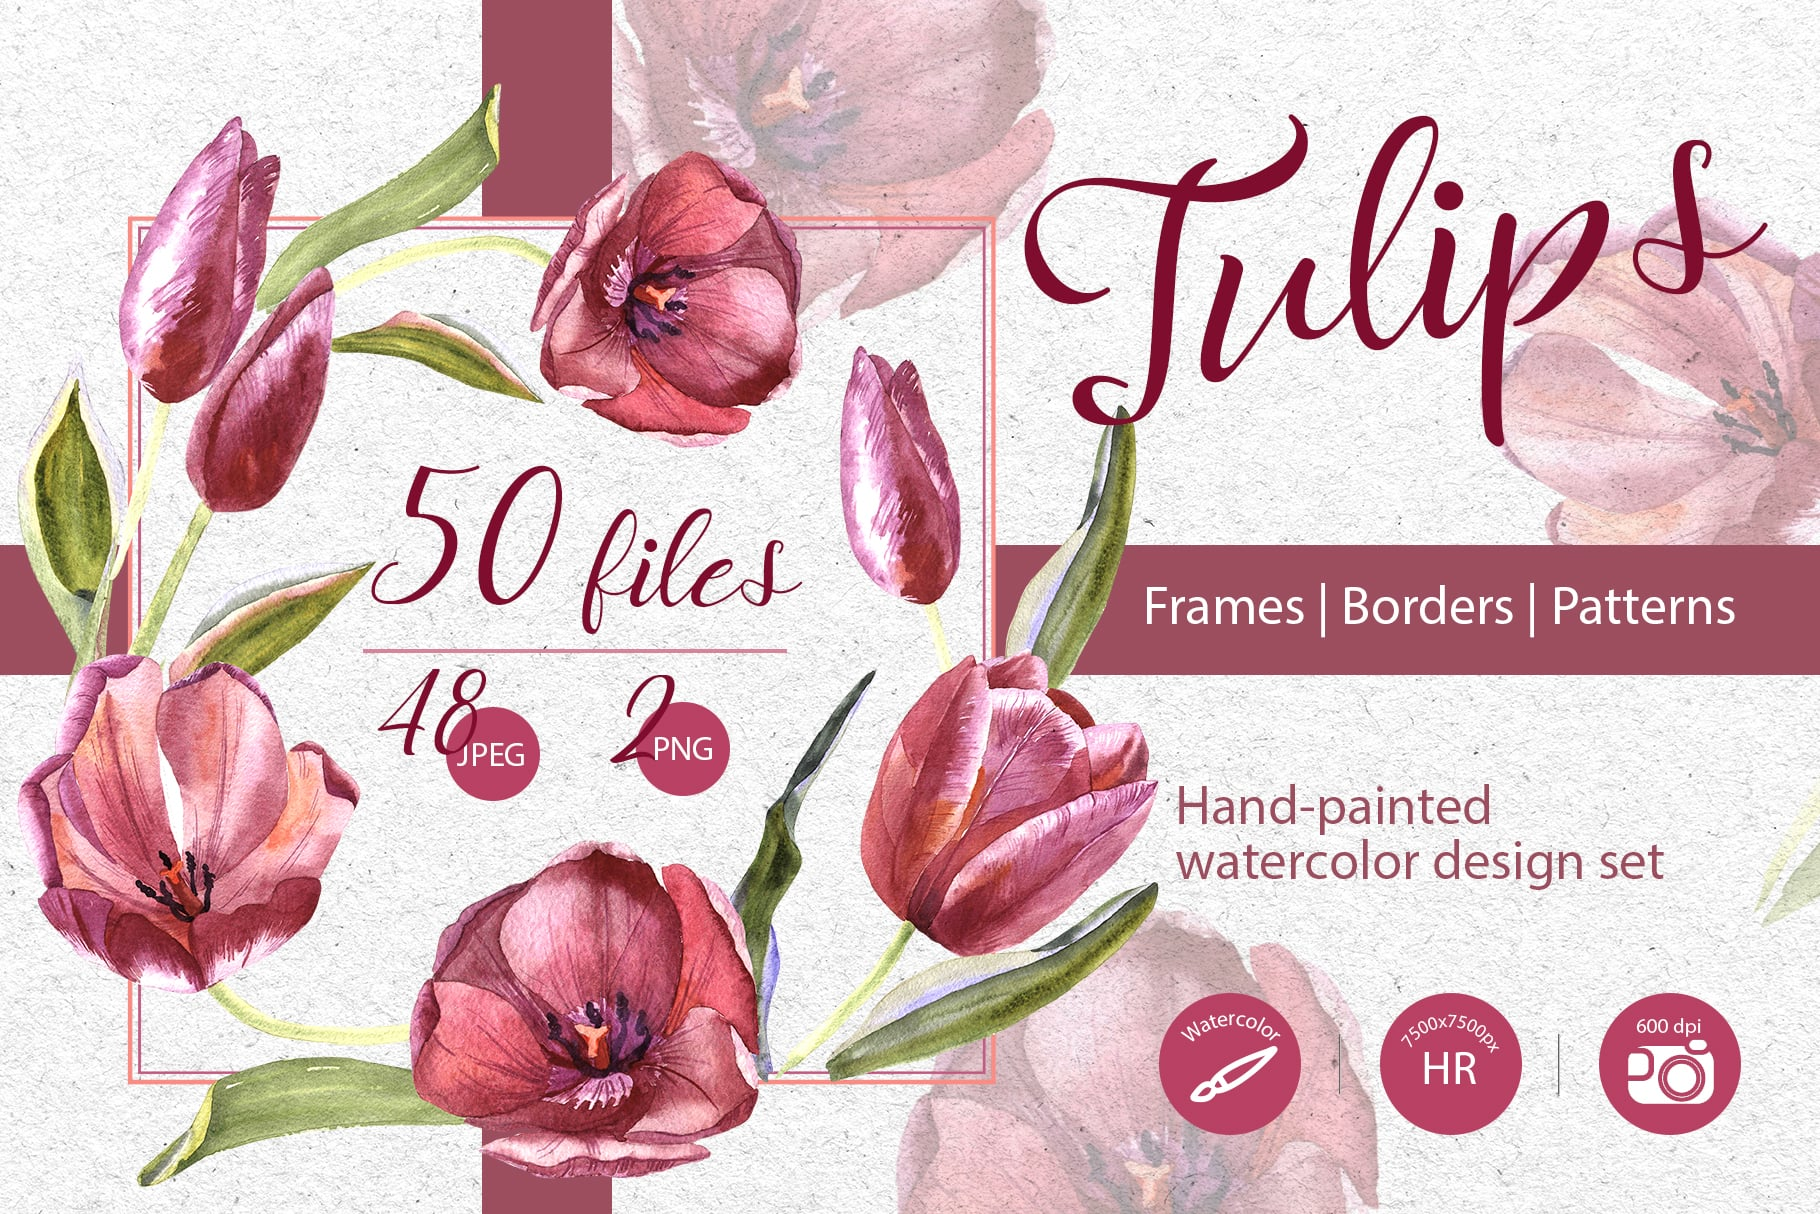 Wildflower Red Tulips PNG Watercolor Set - cover 1